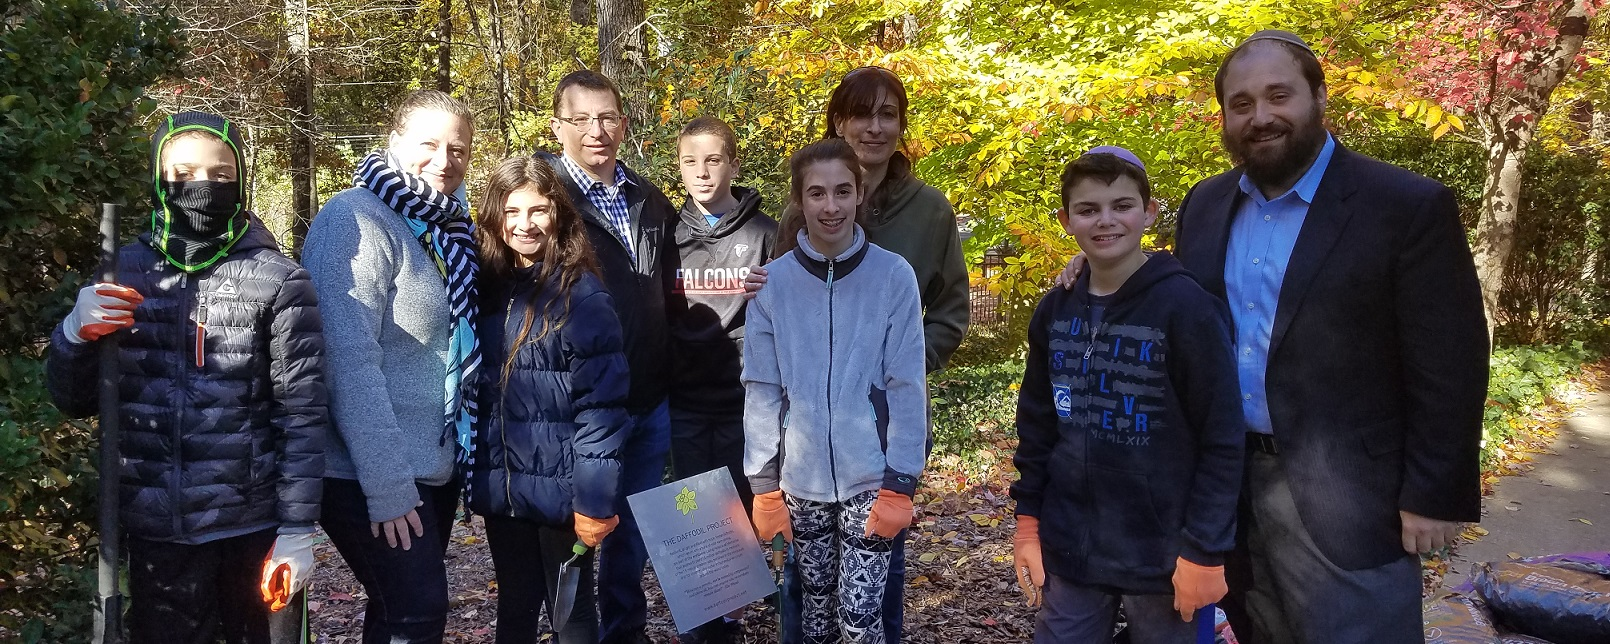 """<span class=""""slider_title"""">                                     Grow With Us                                </span>                                                                                                                                                                                       <span class=""""slider_description"""">Teens plant daffodils for Am Yisrael Chai</span>"""